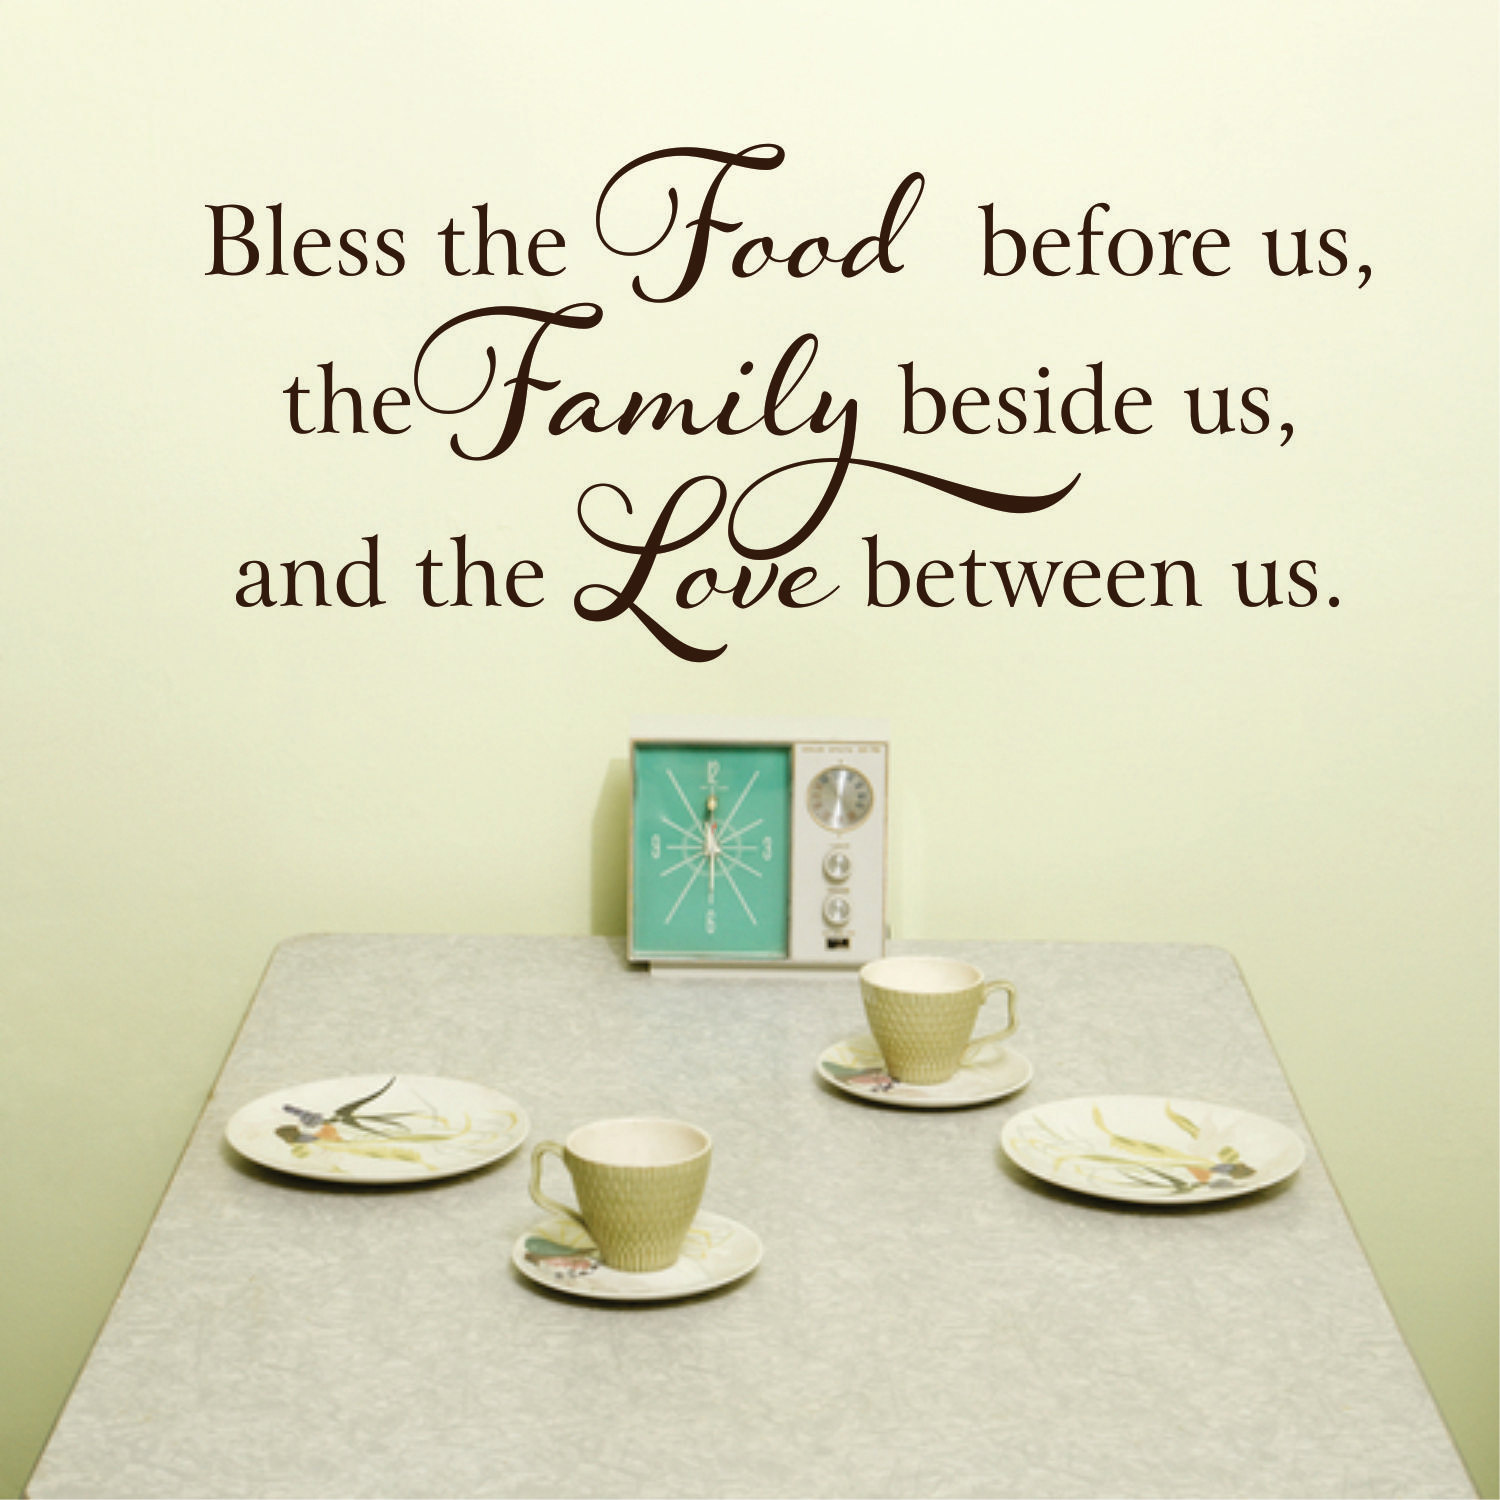 Kitchen Wall Decal Kitchen Decor Kitchen Signs Bless